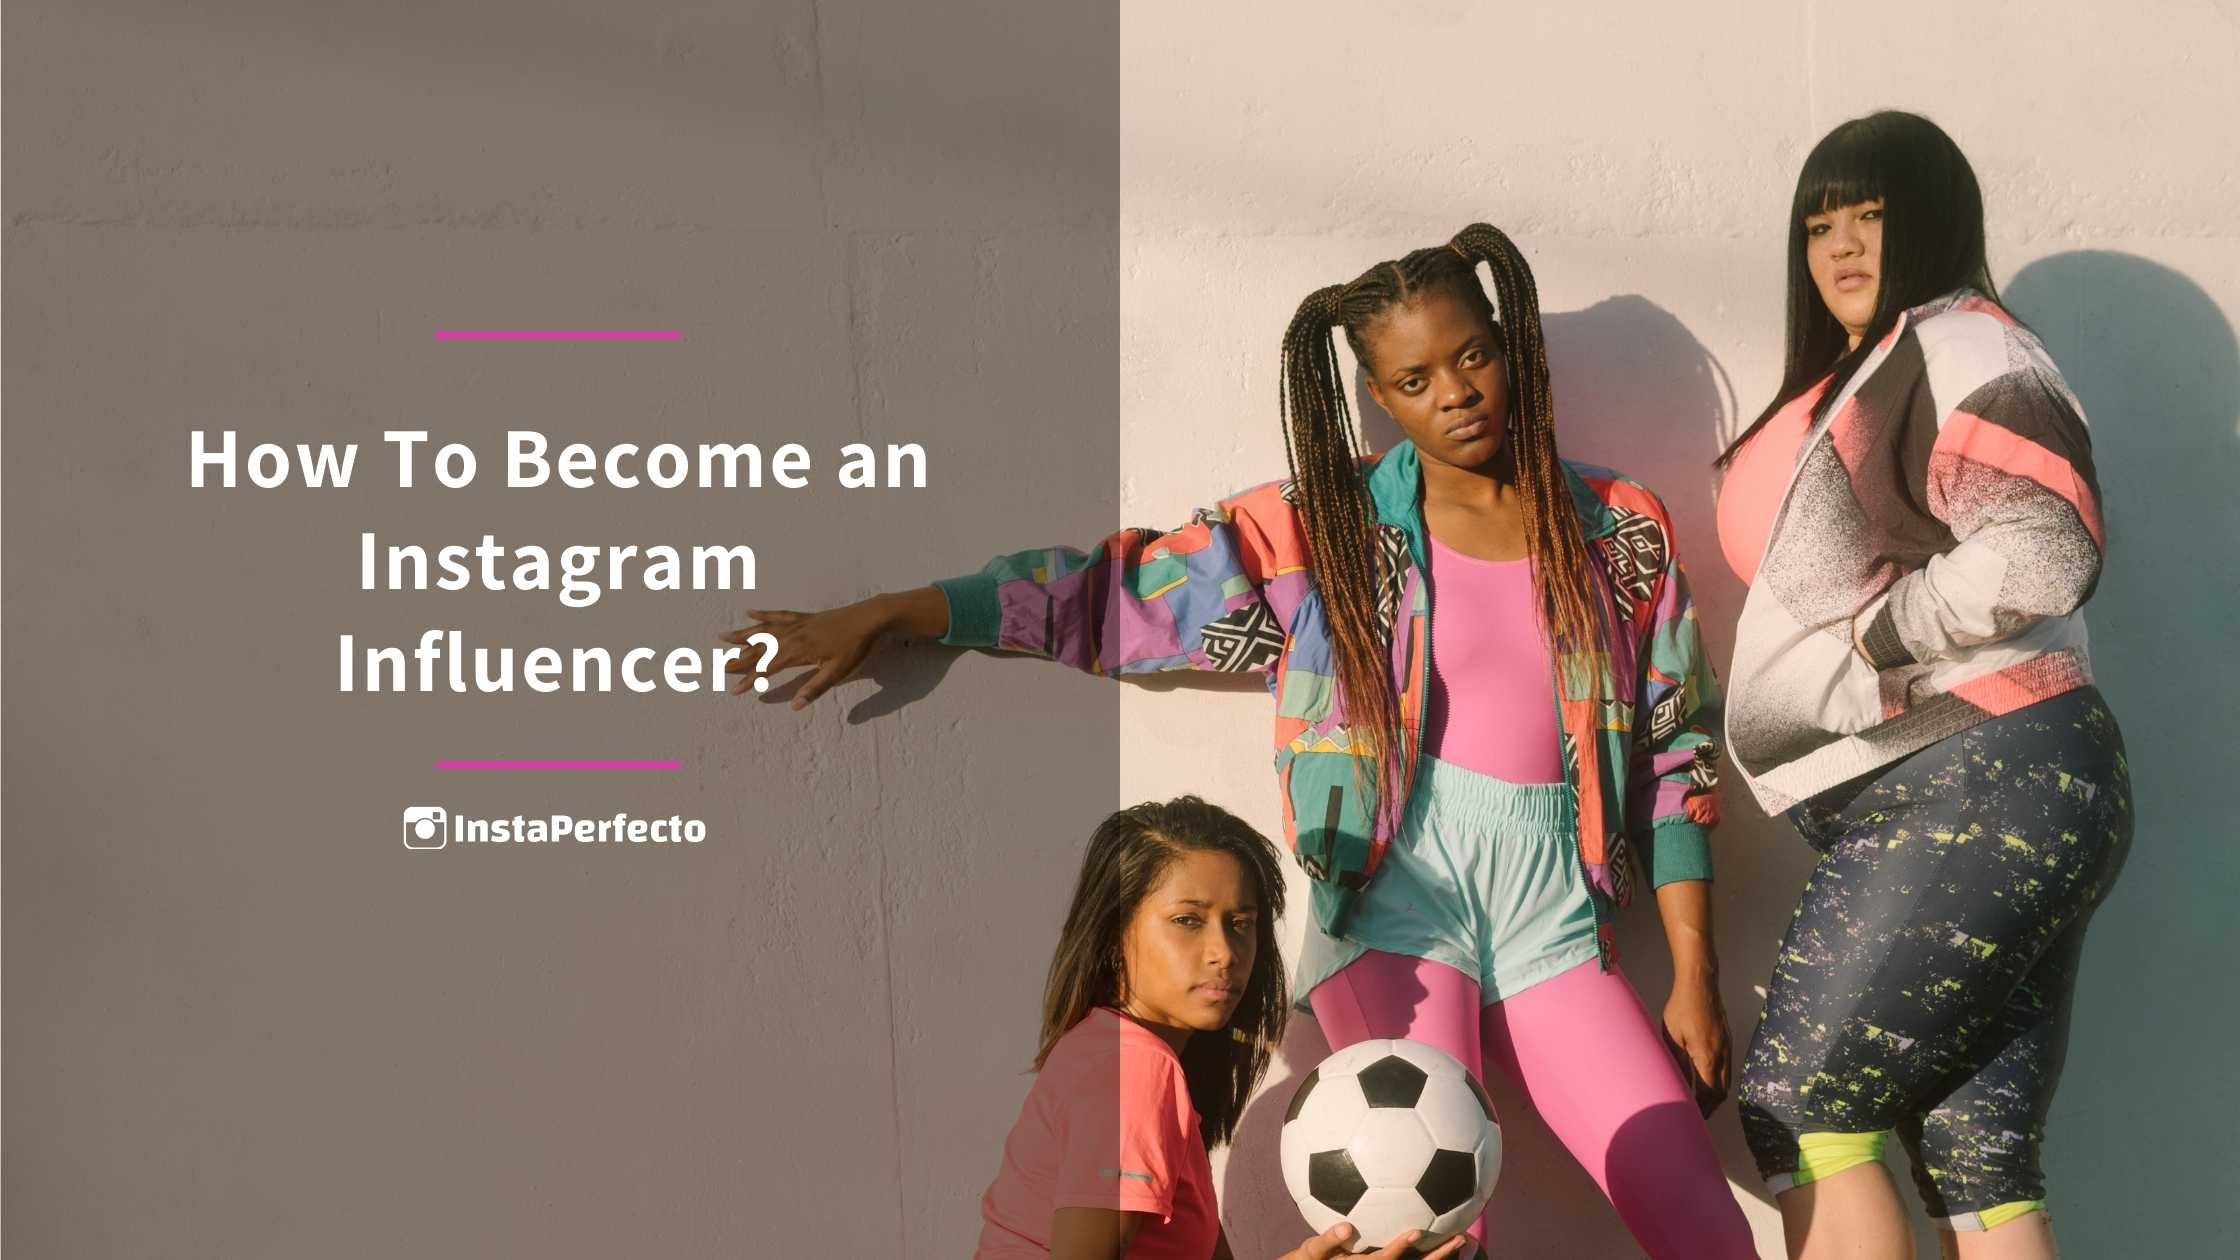 How To Become an Instagram Influencer?